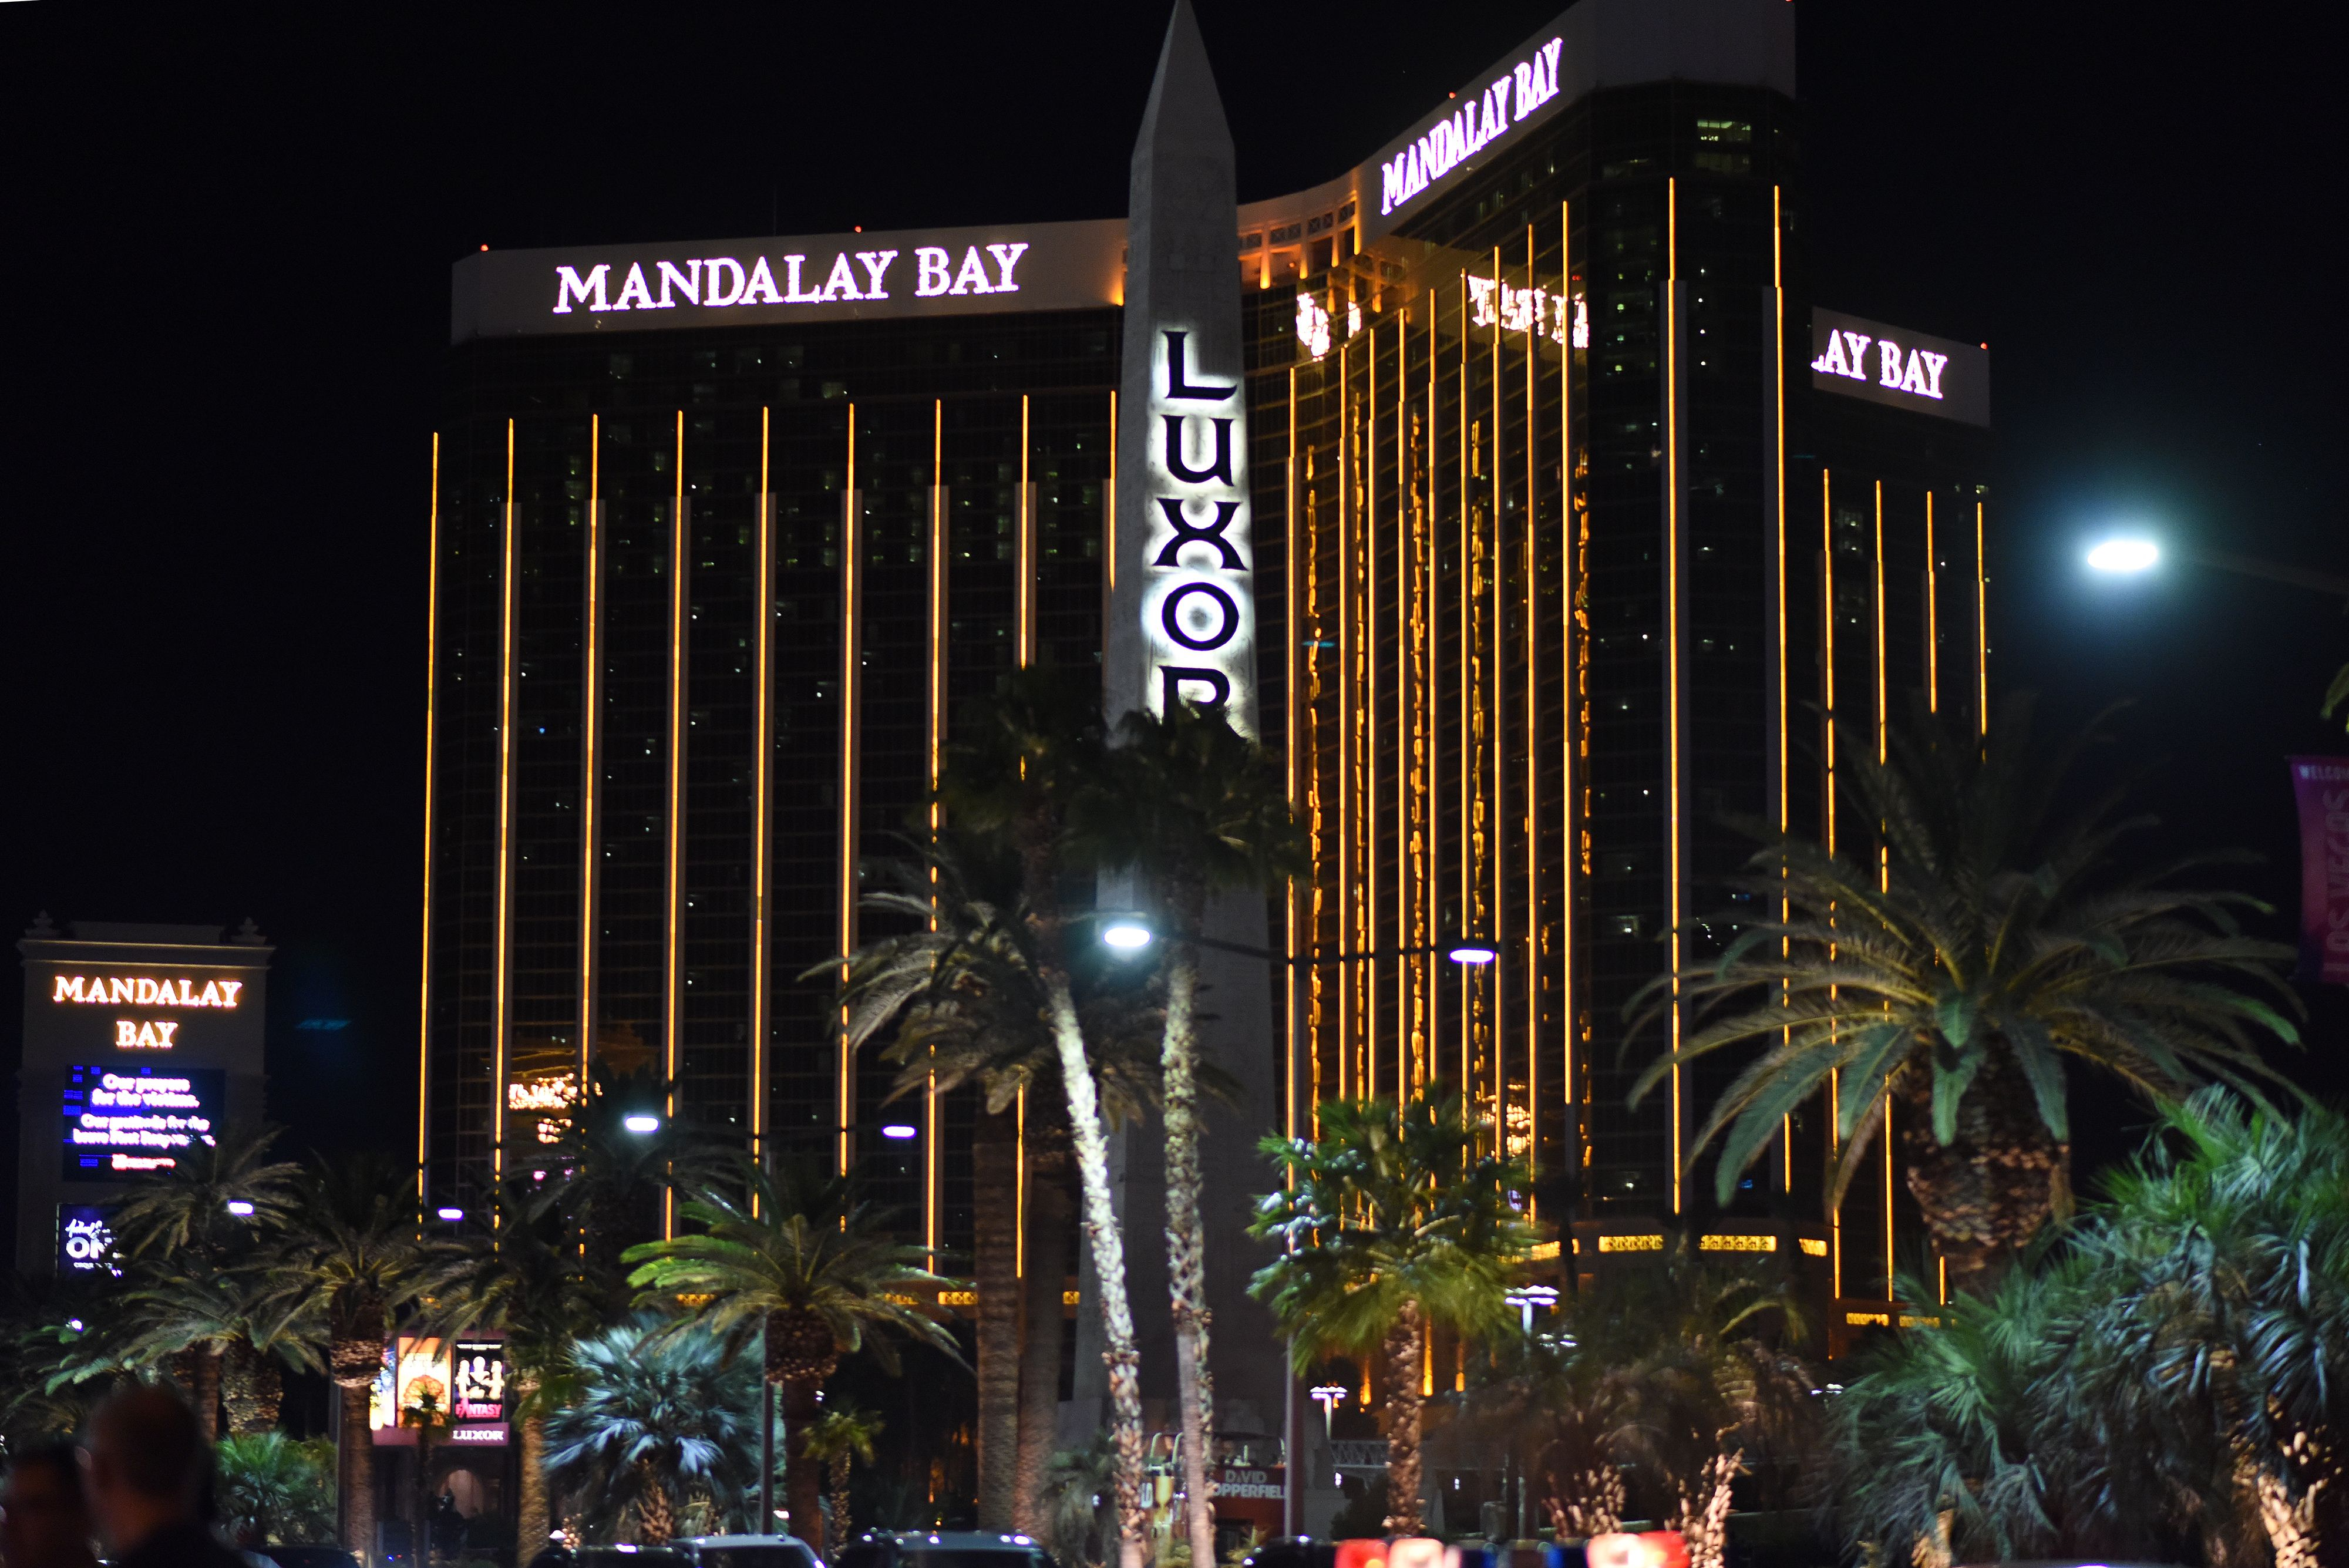 The Mandalay Bay Hotel on the Las Vegas Strip is seen, in Las Vegas, Nevada on October 3, 2017, after a gunman killed 58 people and wounded more than 500 others, before taking his own life, when he opened fire from a hotel on a country music festival. Police said the gunman, a 64-year-old local resident named as Stephen Paddock, had been killed after a SWAT team responded to reports of multiple gunfire from the 32nd floor of the Mandalay Bay, a hotel-casino next to the concert venue. (Photo by ROBYN BECK/AFP/Getty Images)